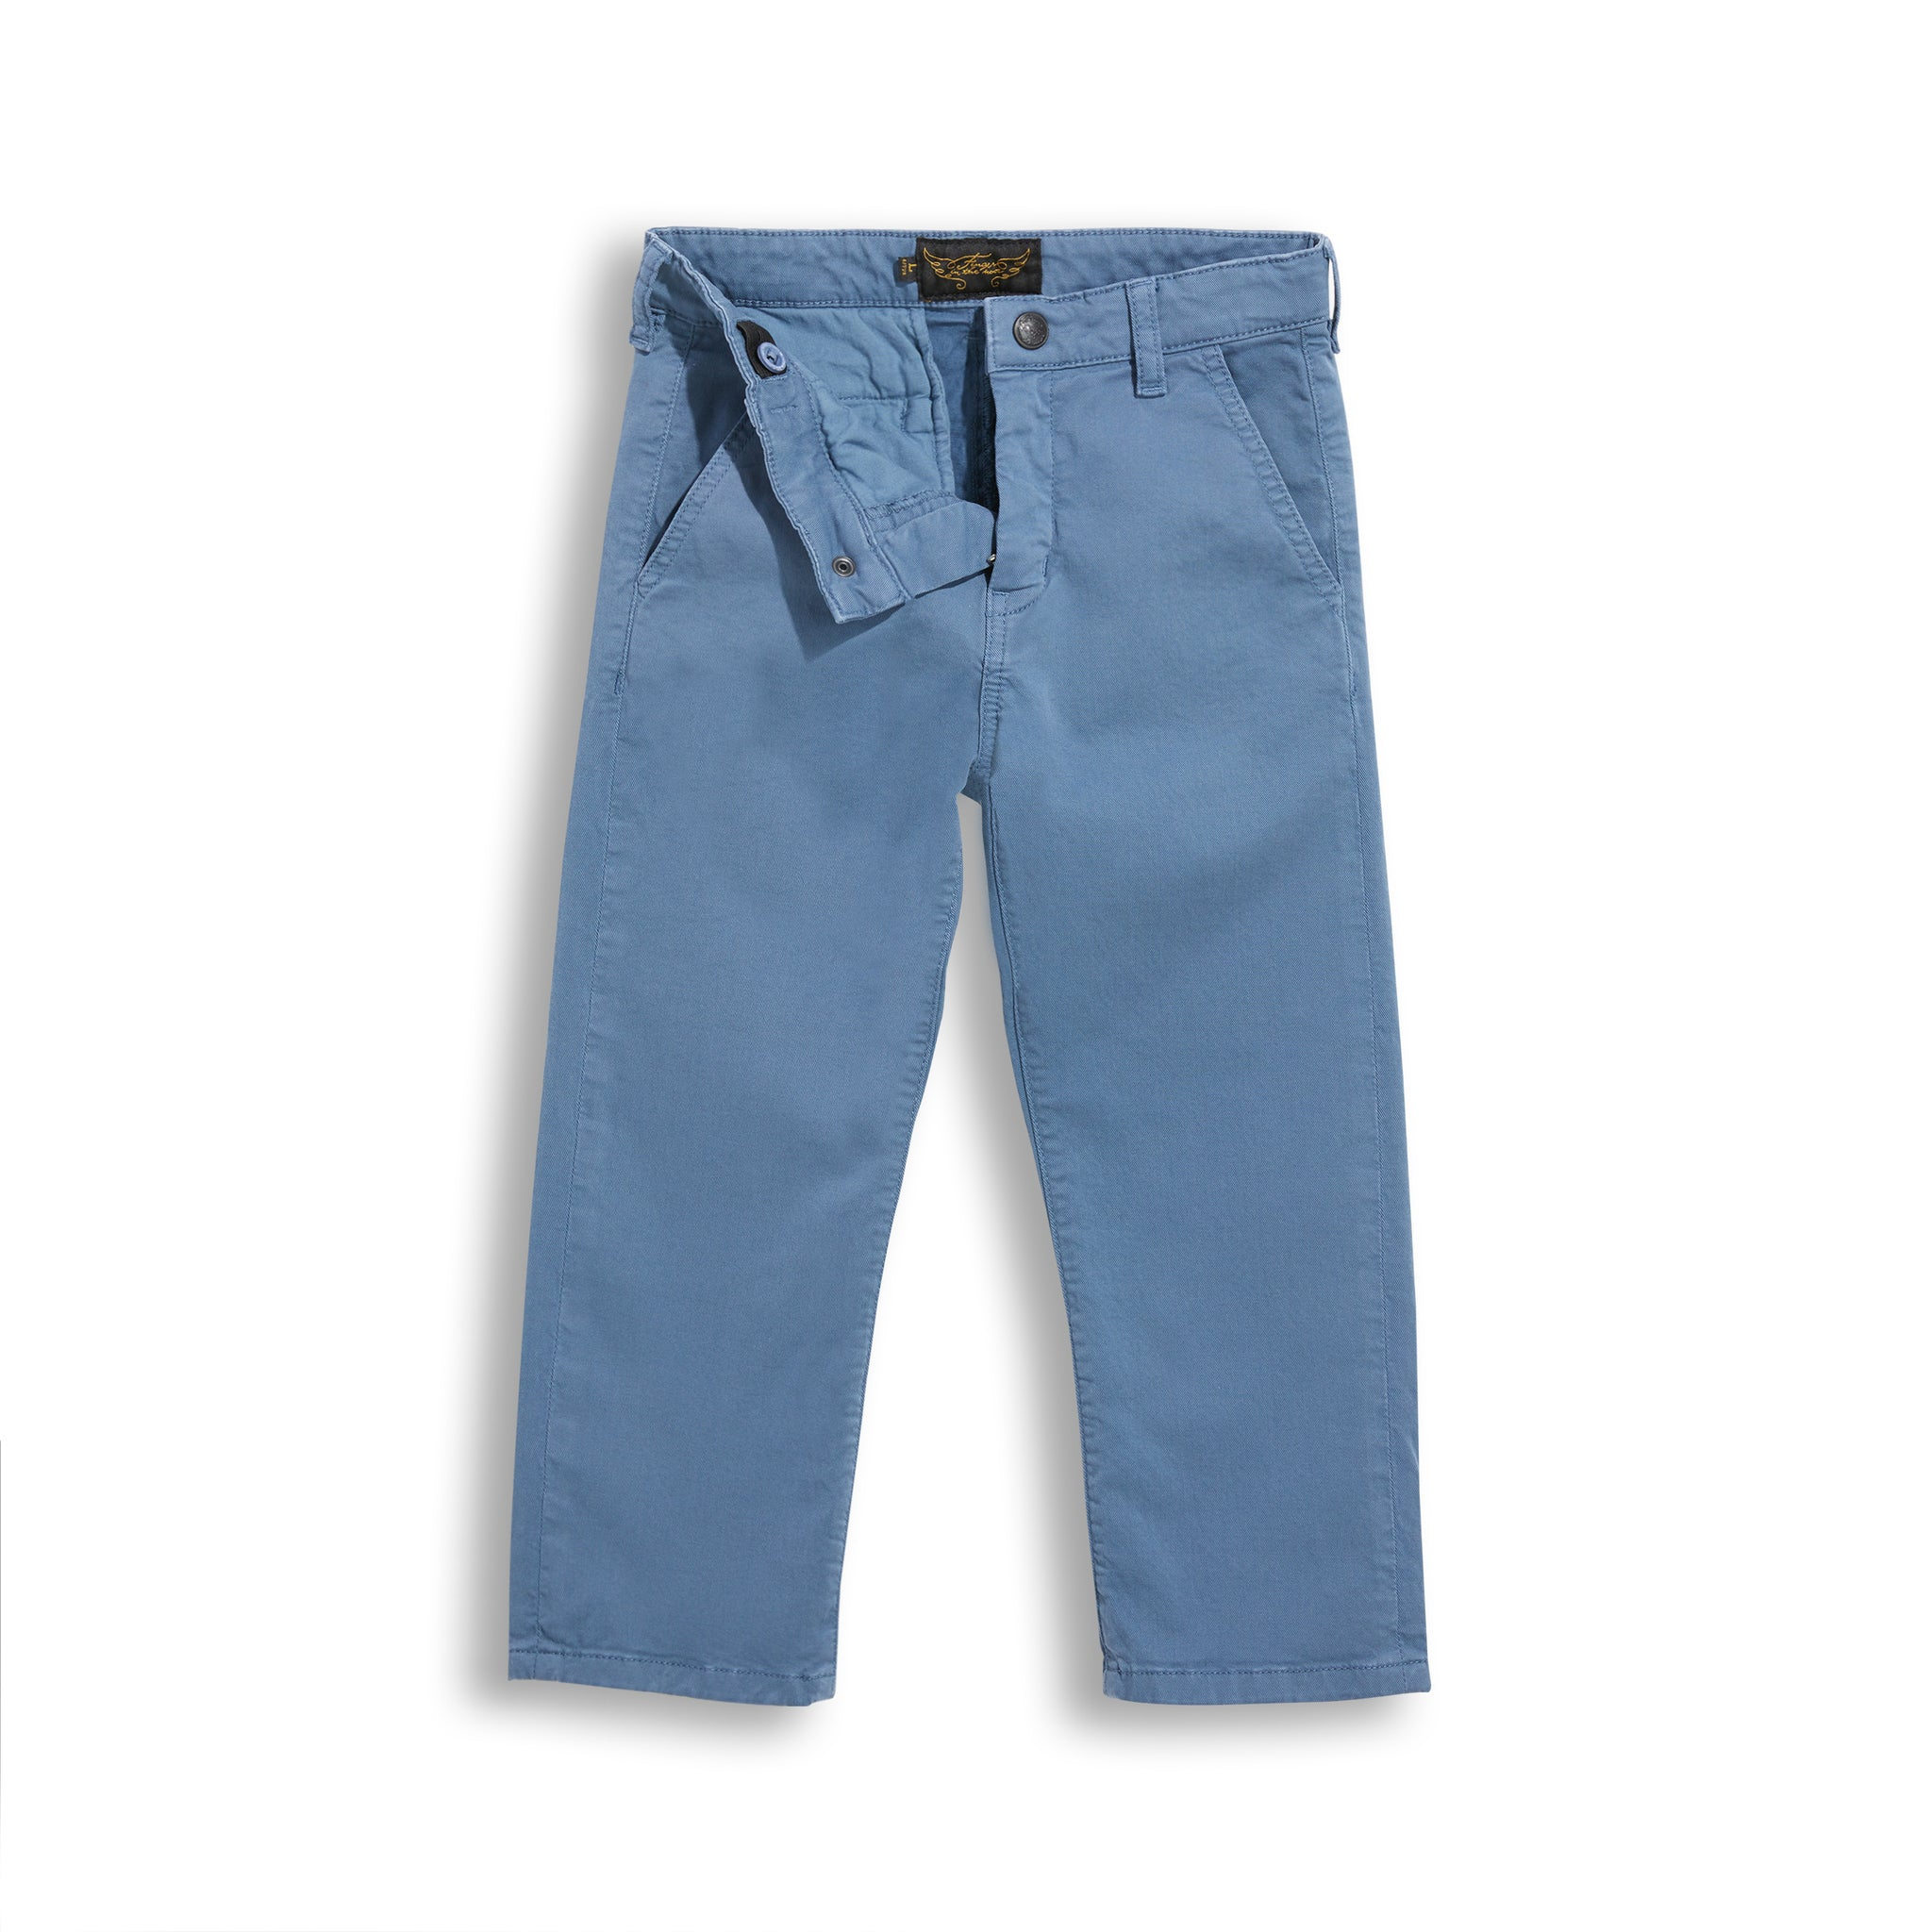 PORTMAN Stone Blue - Chino Fit Pants 3